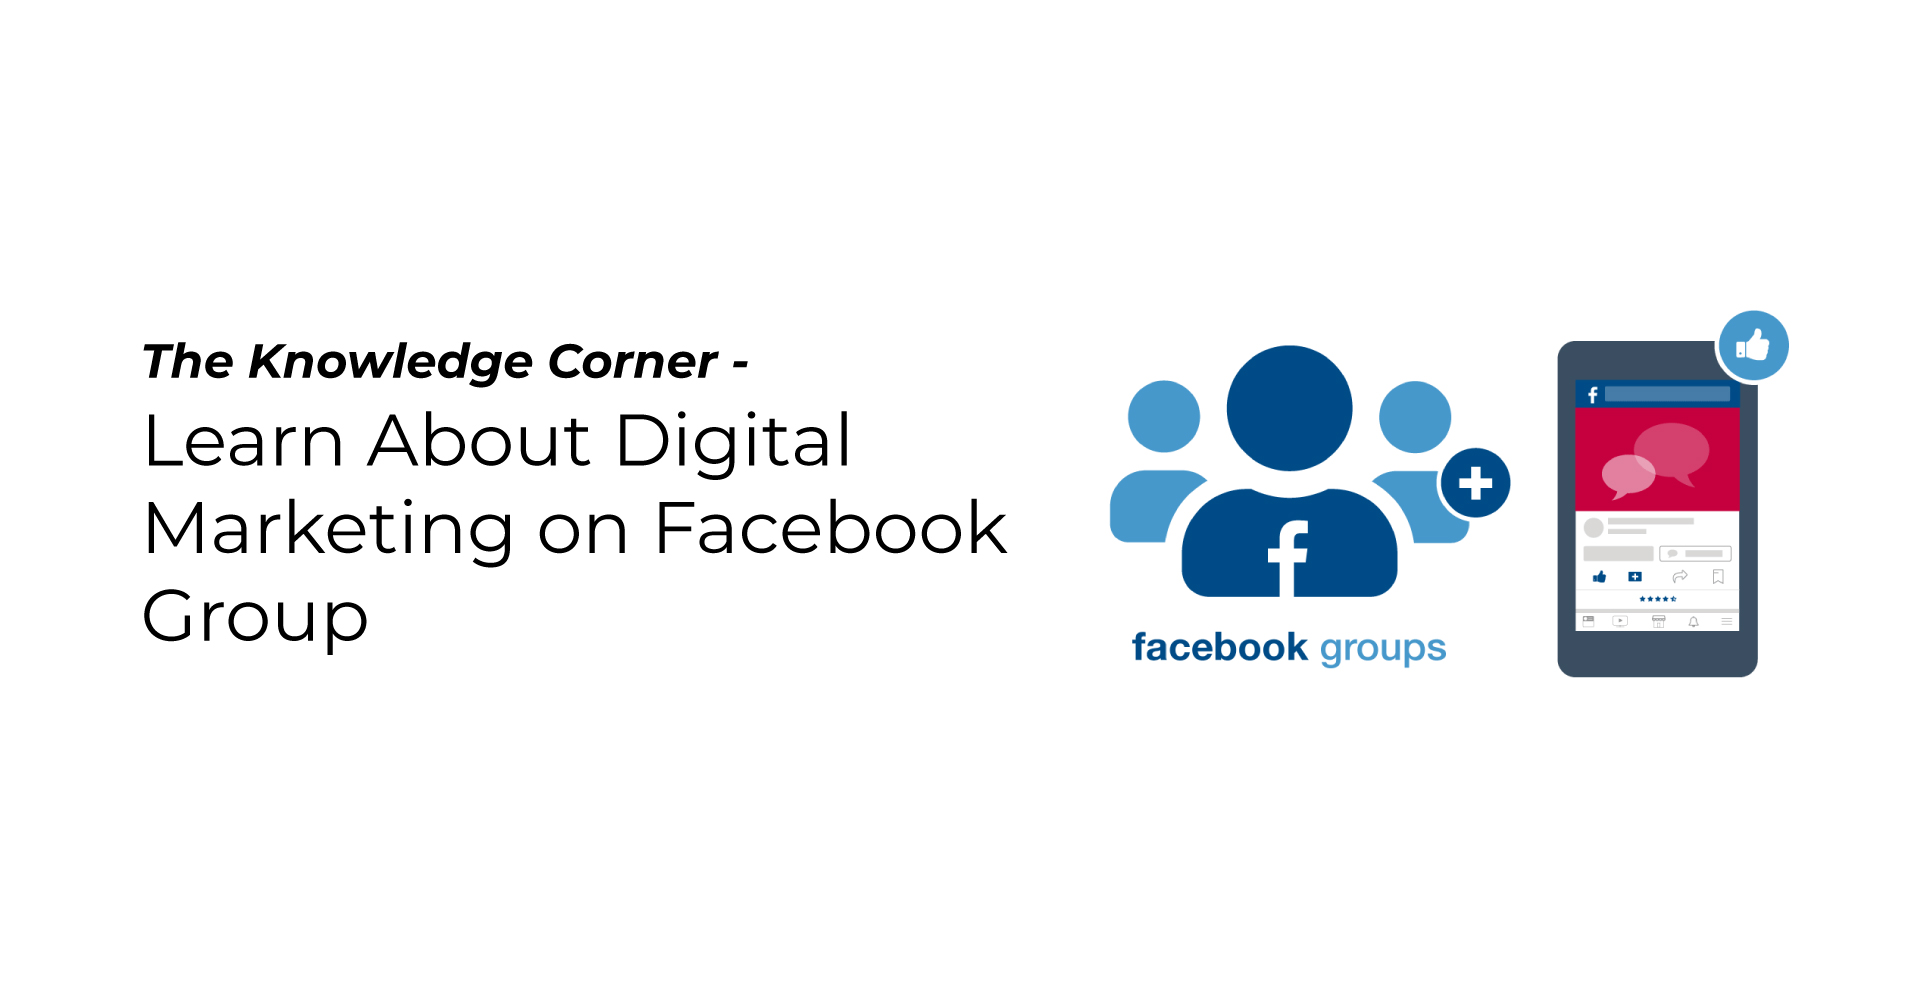 The Knowledge Corner - Learn About Digital Marketing on Facebook Group